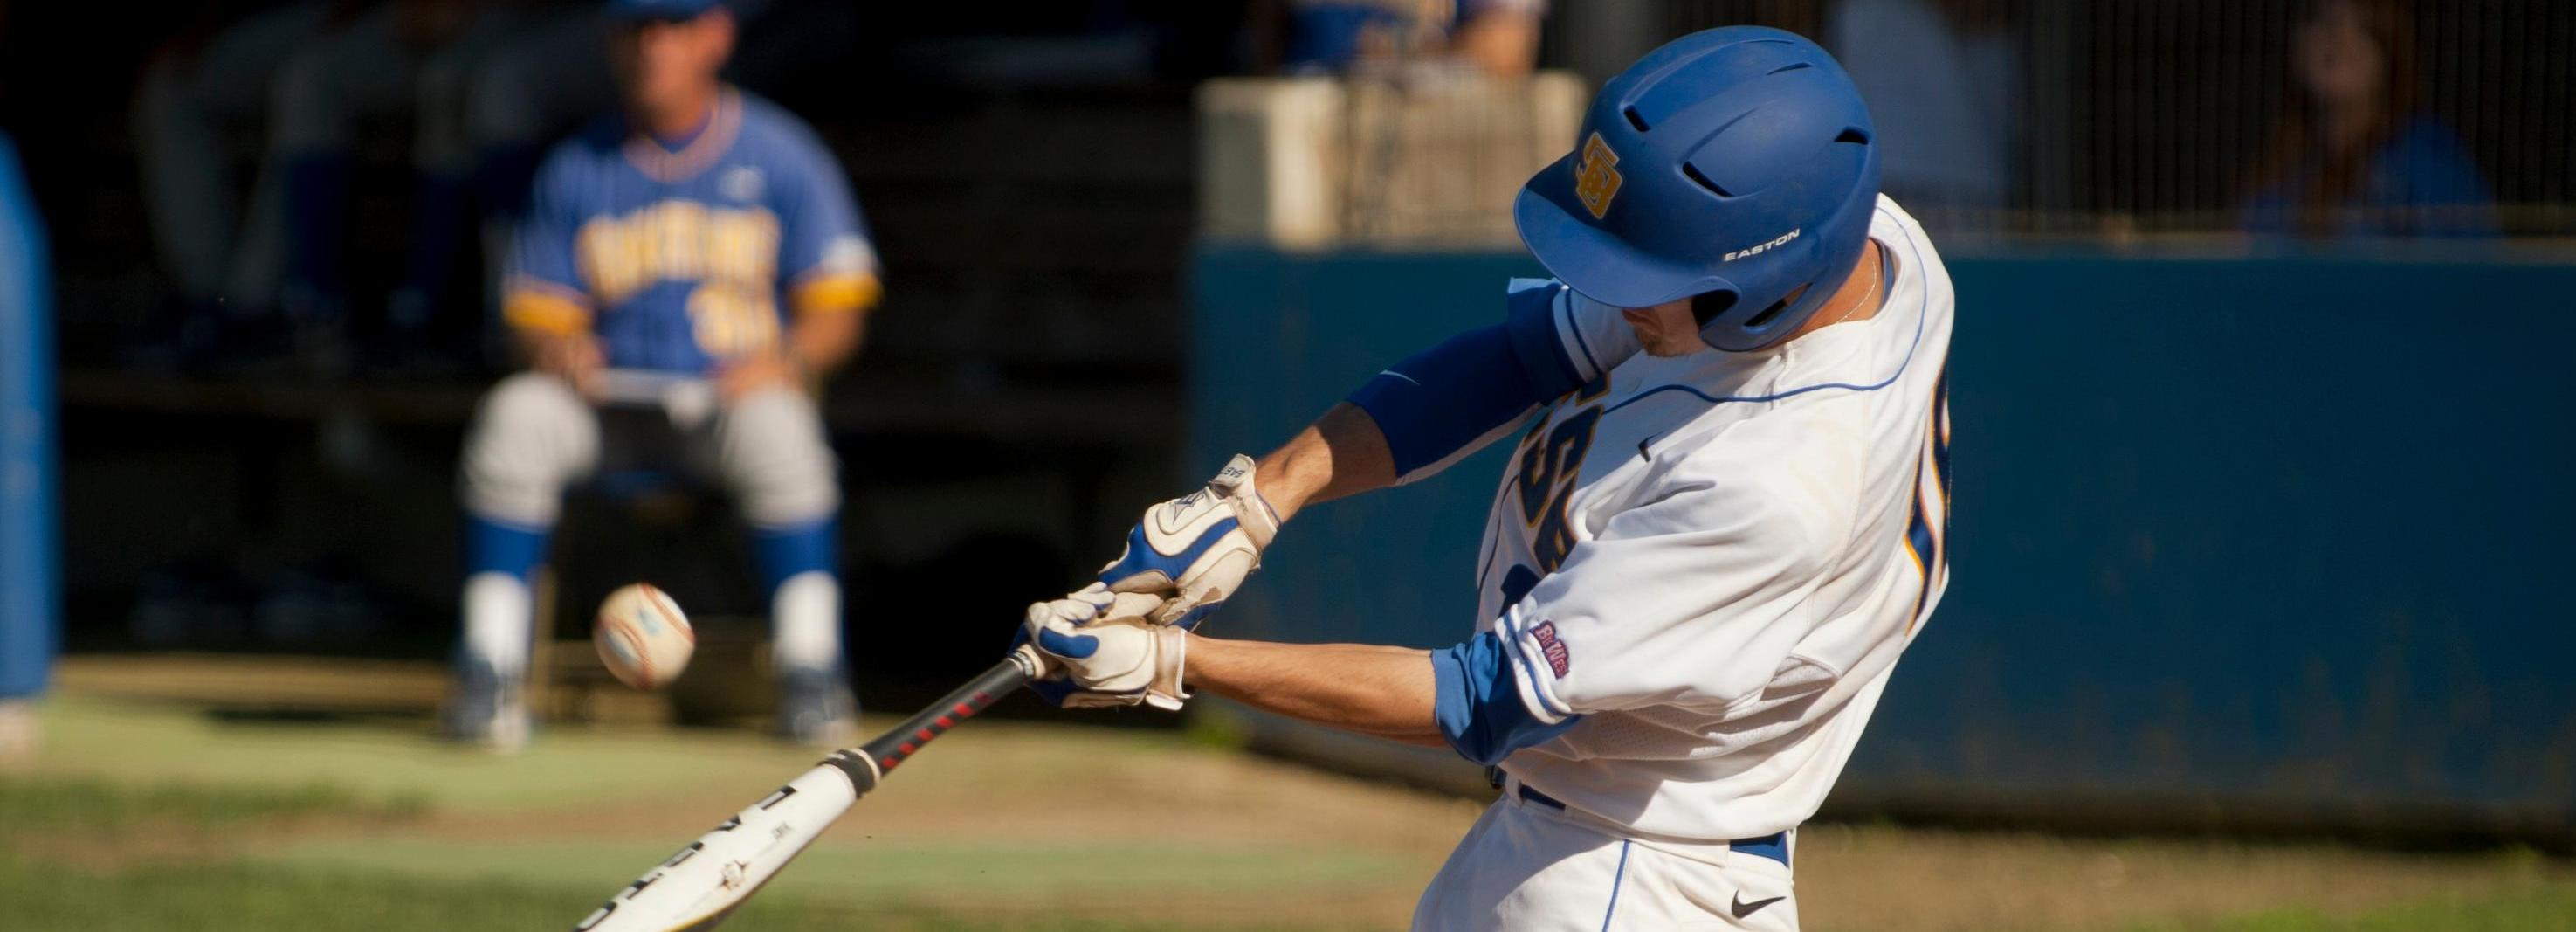 Strong Pitching Carries Gauchos Past San Jose State